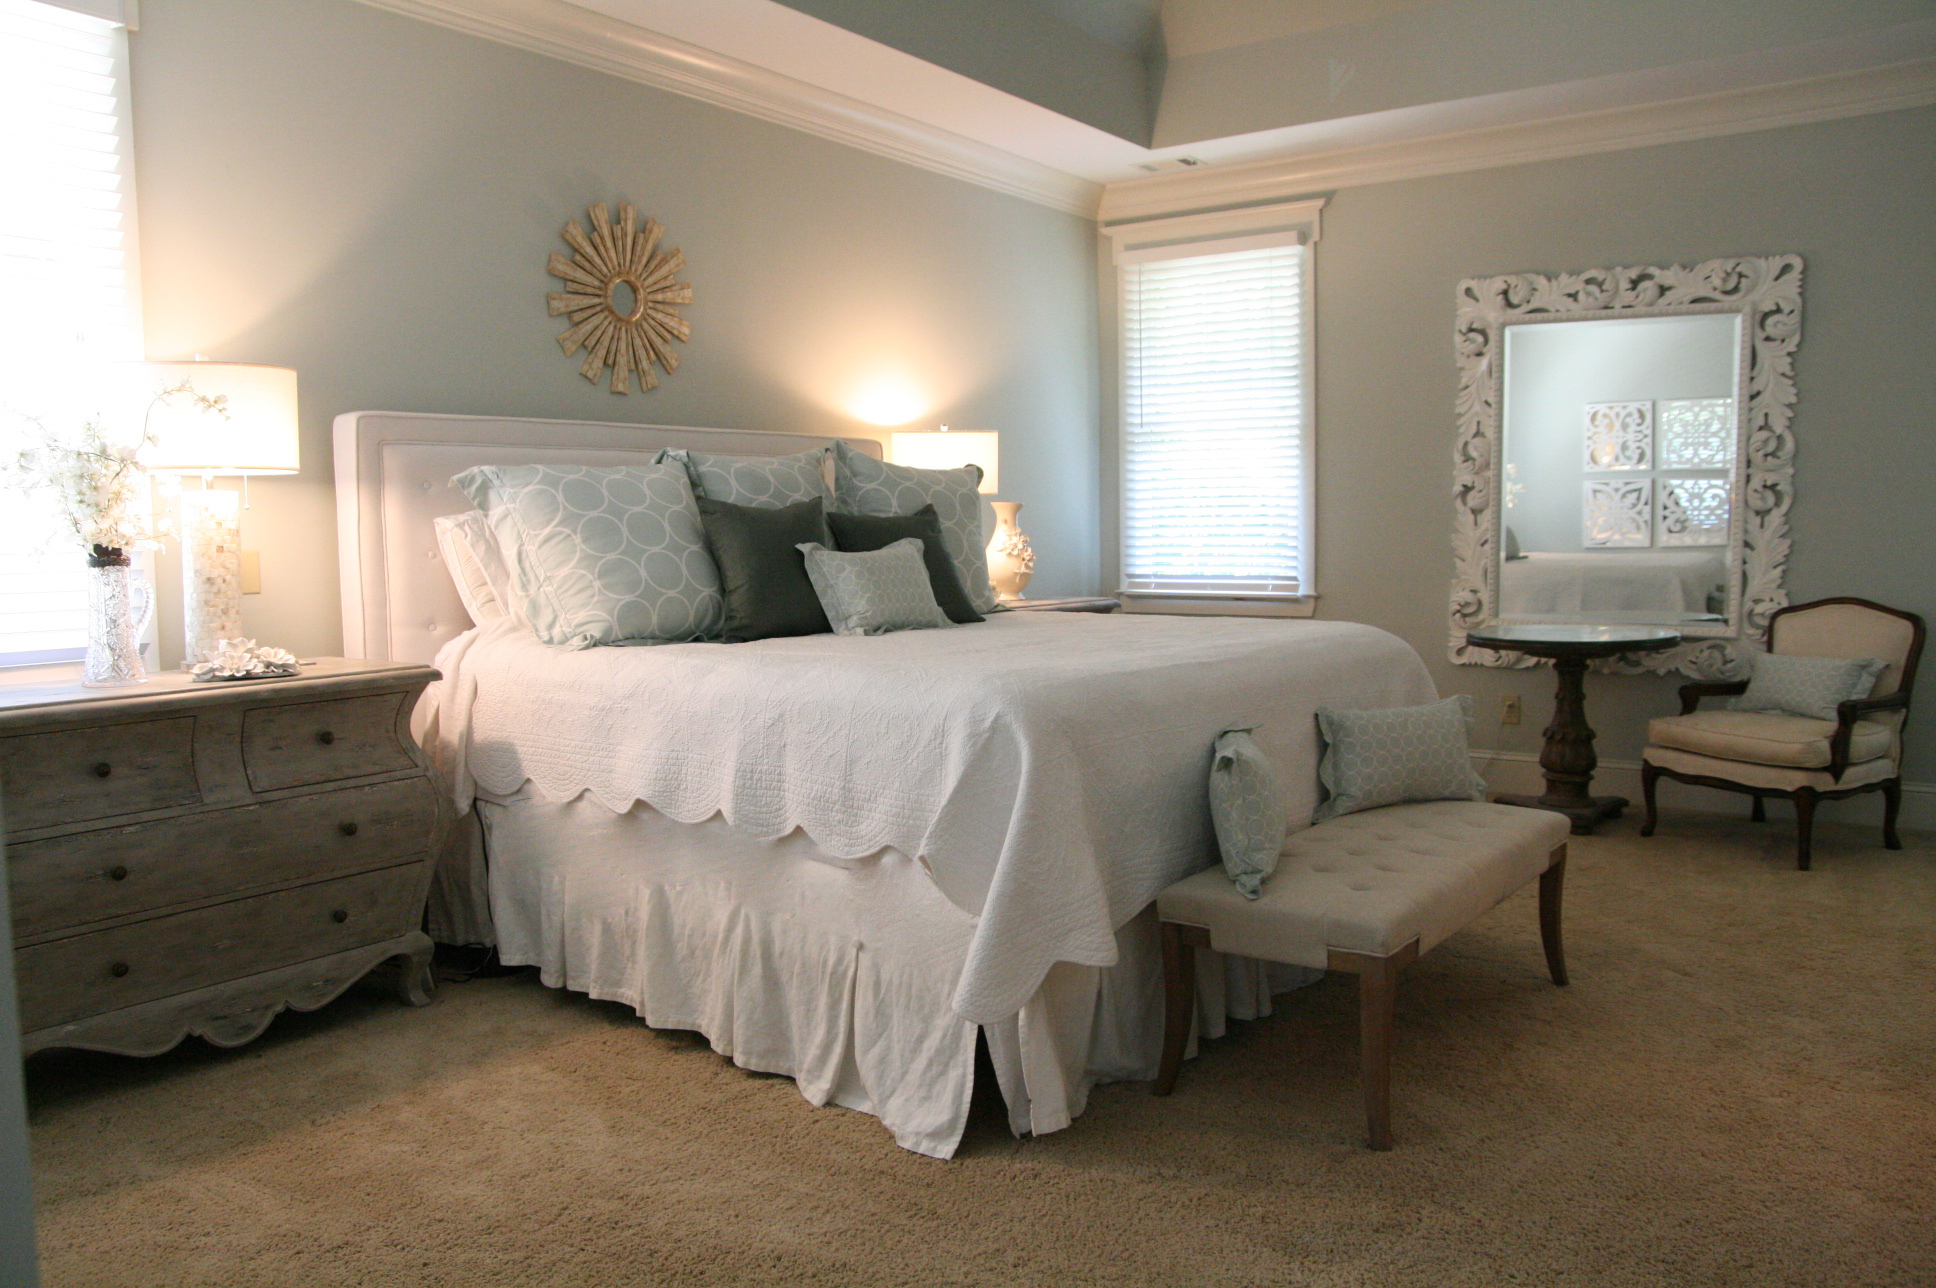 Simply Staged - Complete Guide to Home Staging